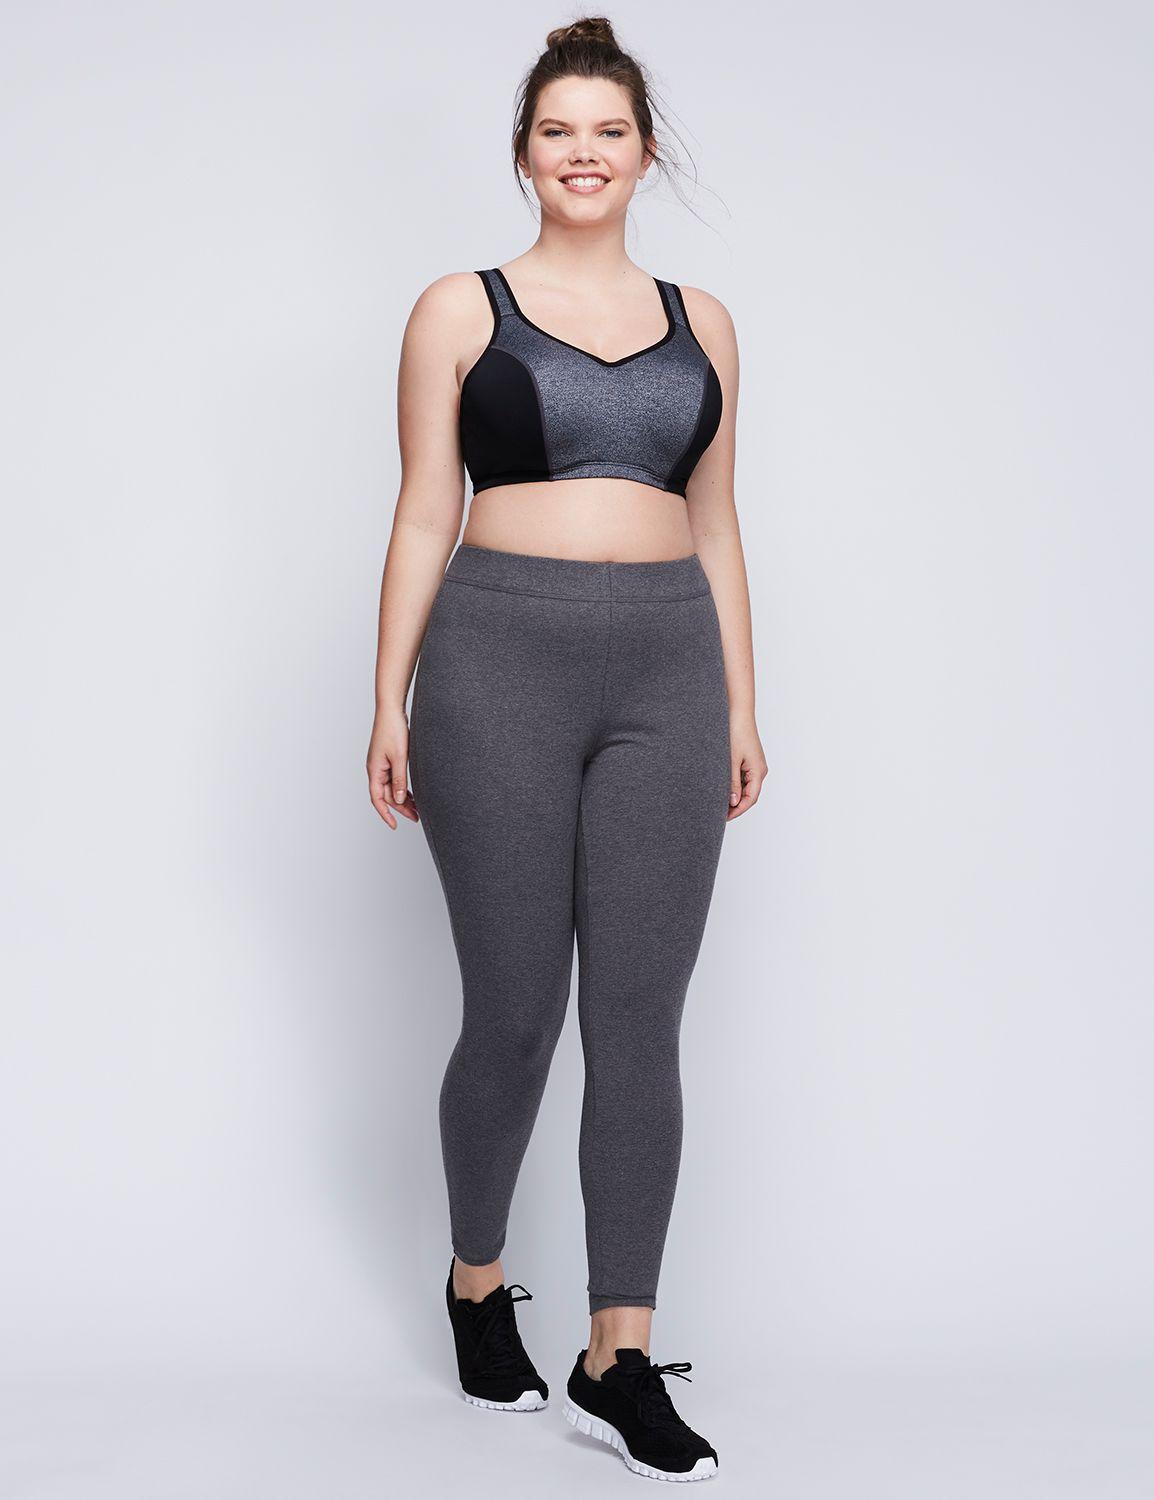 Plus Size Sports Bras with Padded Support | Lane Bryant